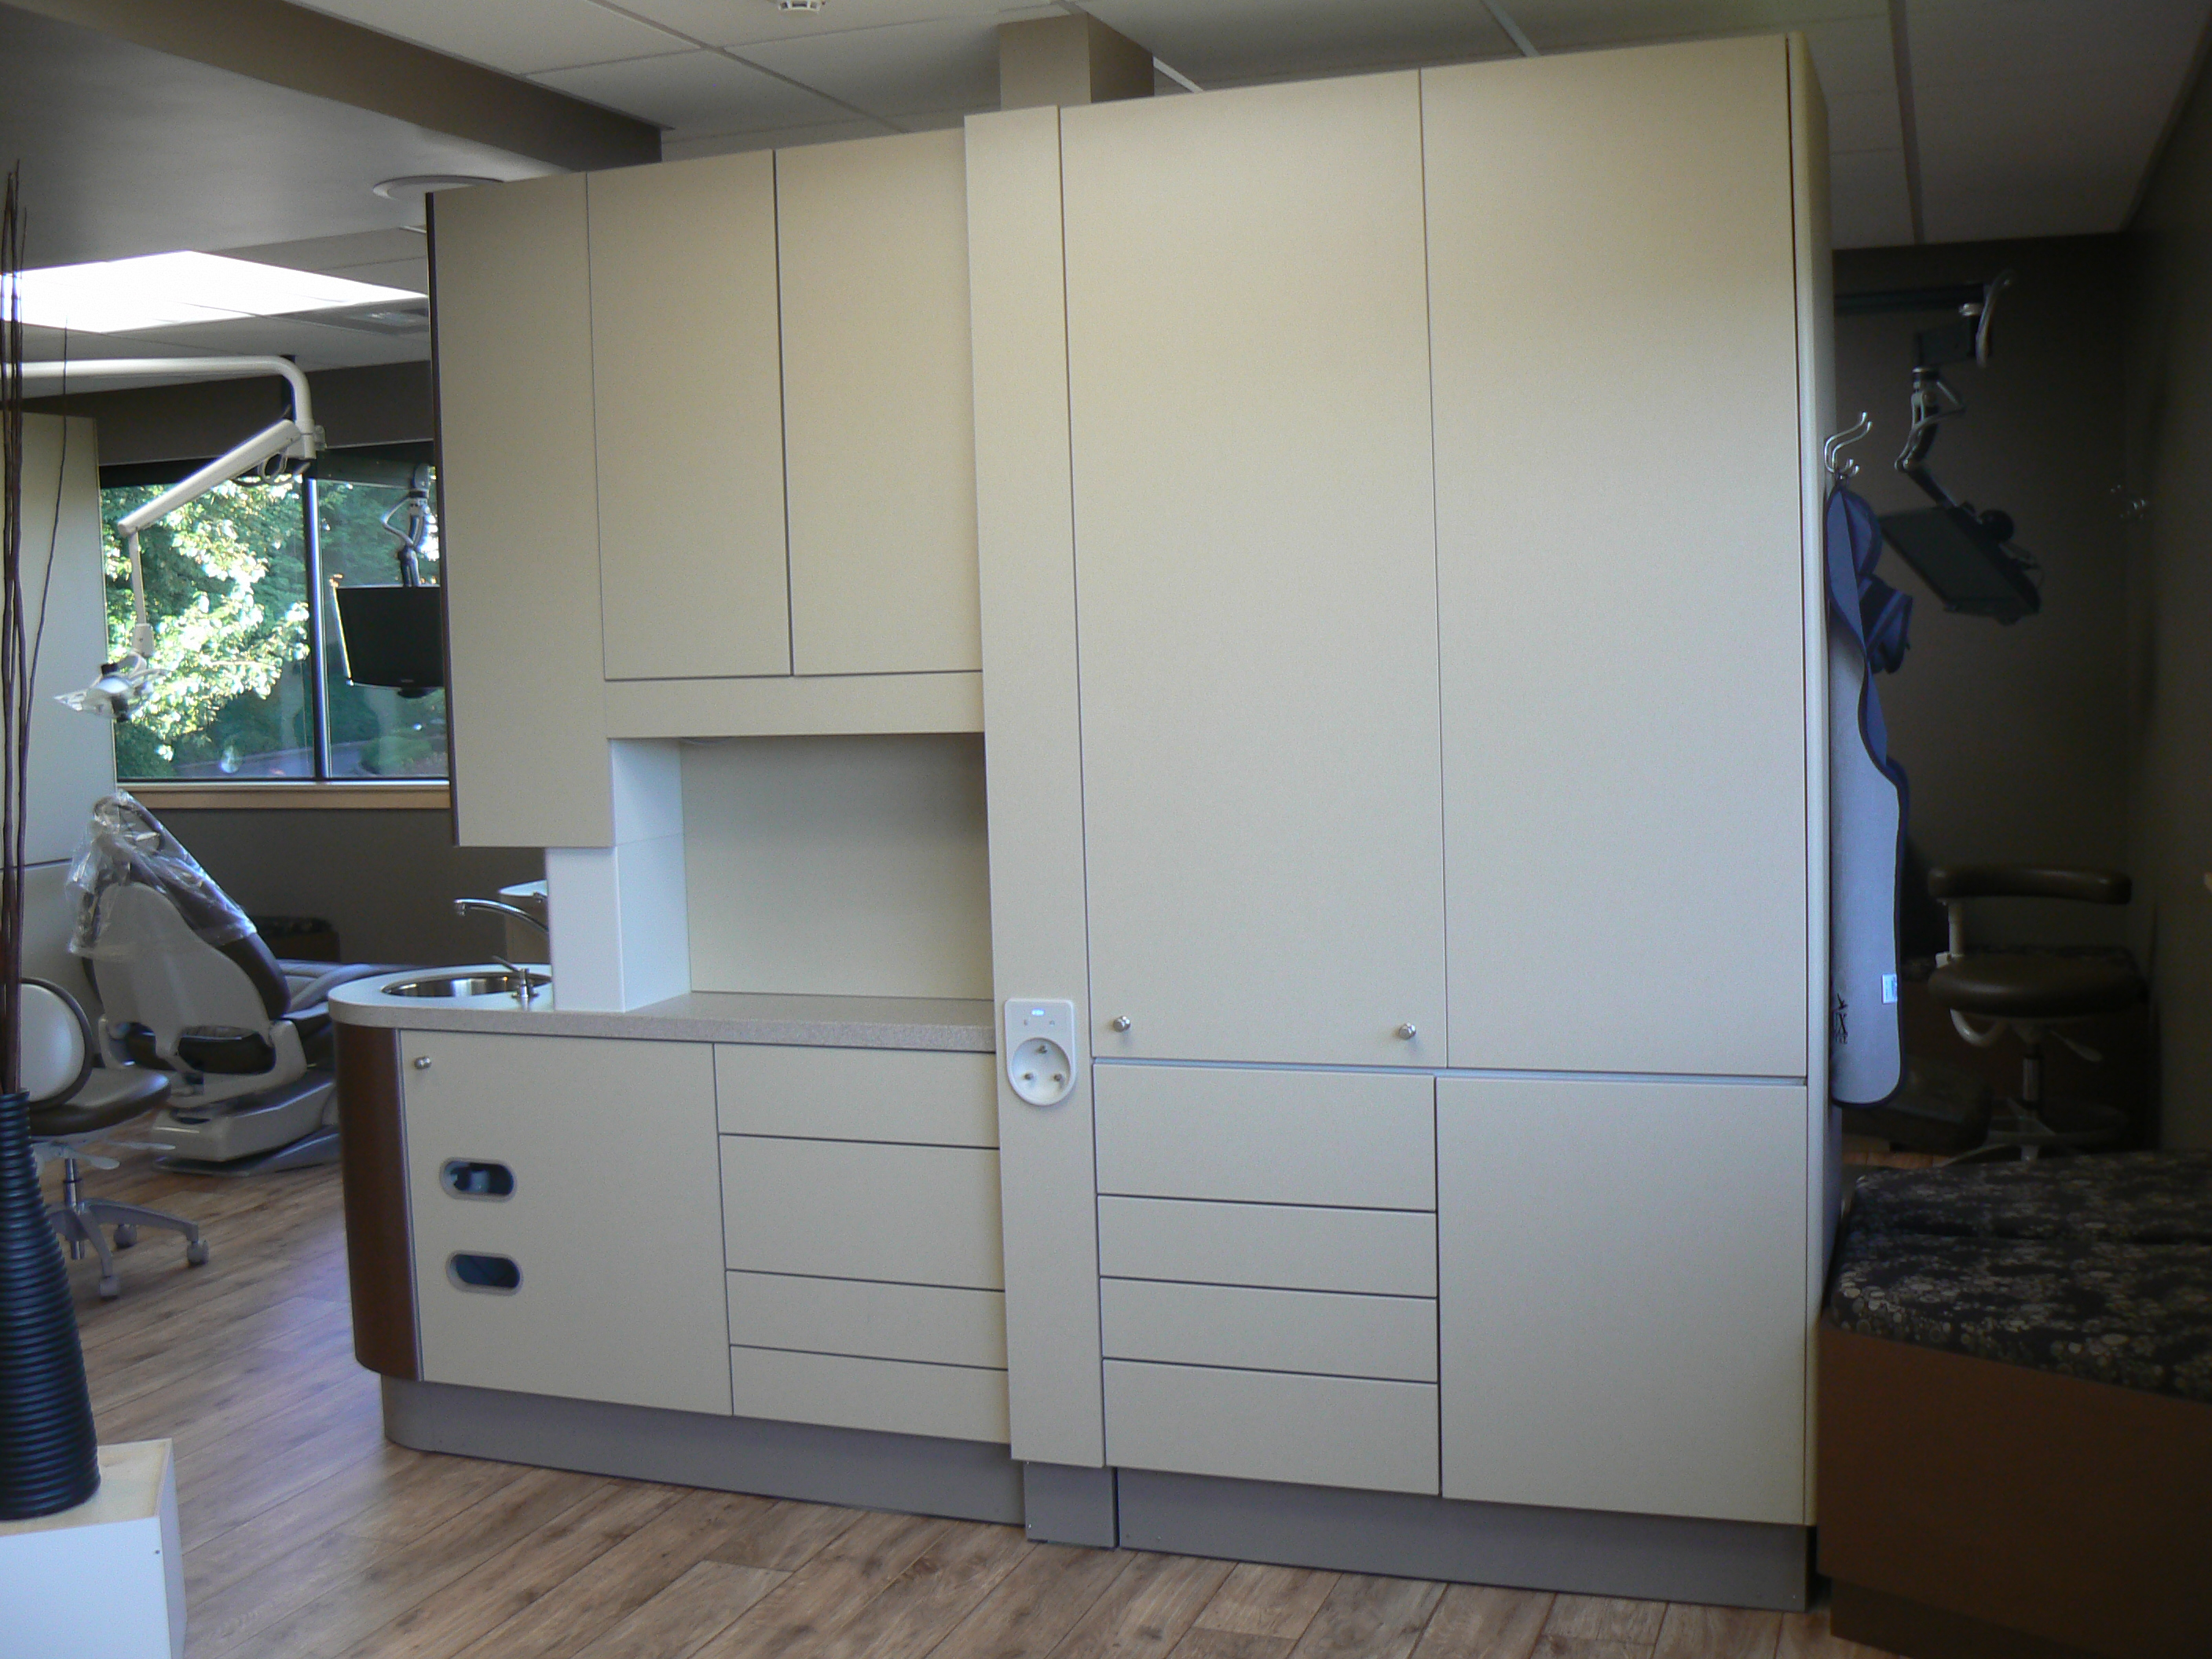 Kitchen Cabinets Everett Wa Display Manufacturing Everett Washington Proview